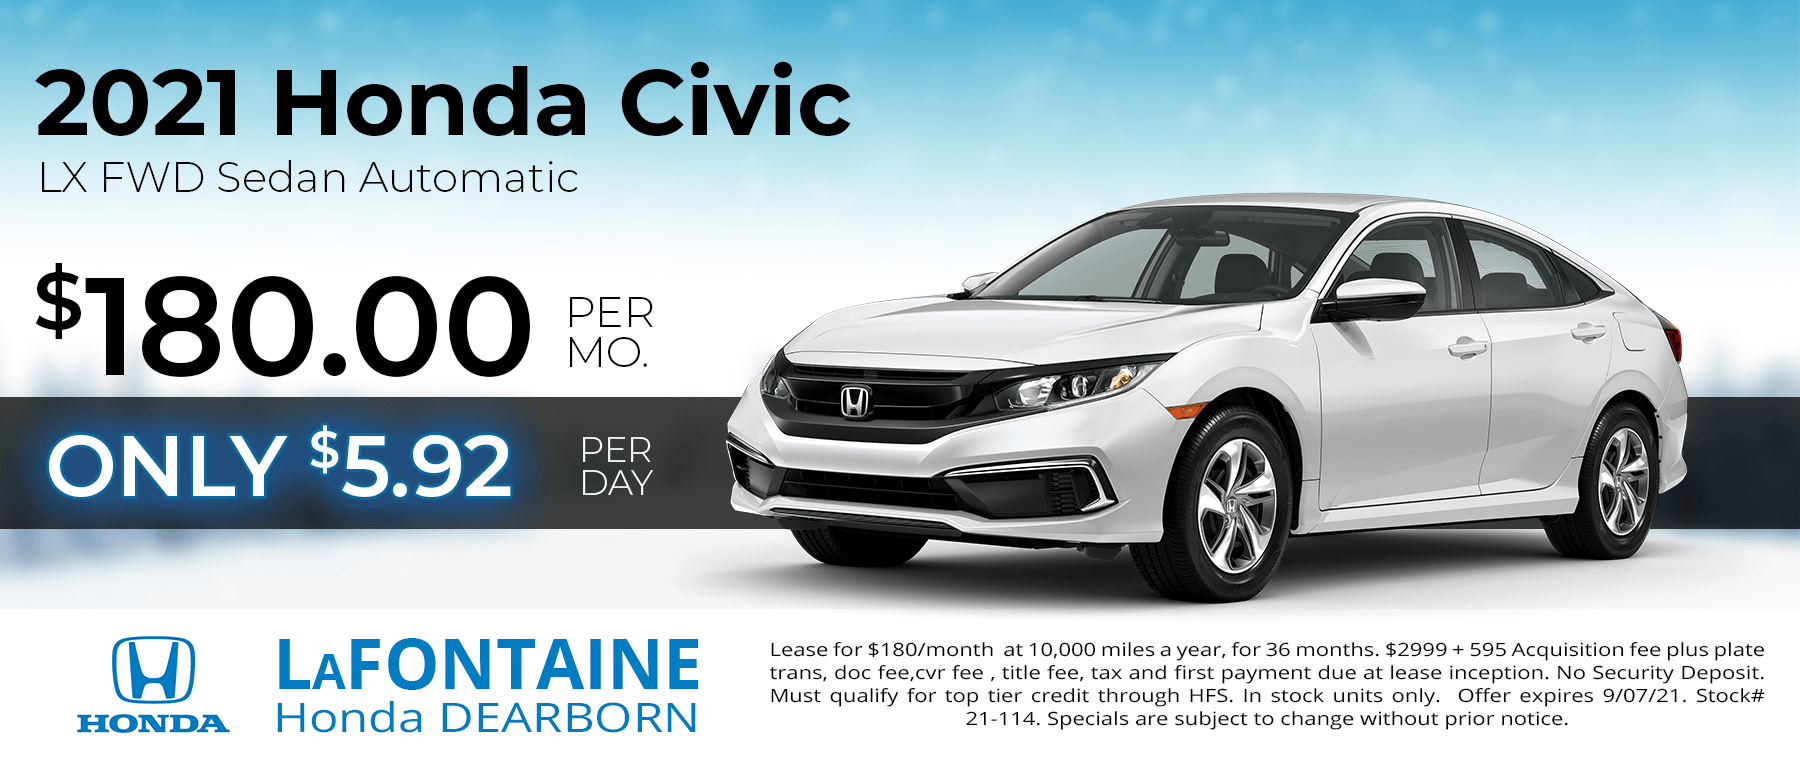 Lease a new 2021 Honda Civic LX for $180/Month for 36 Months